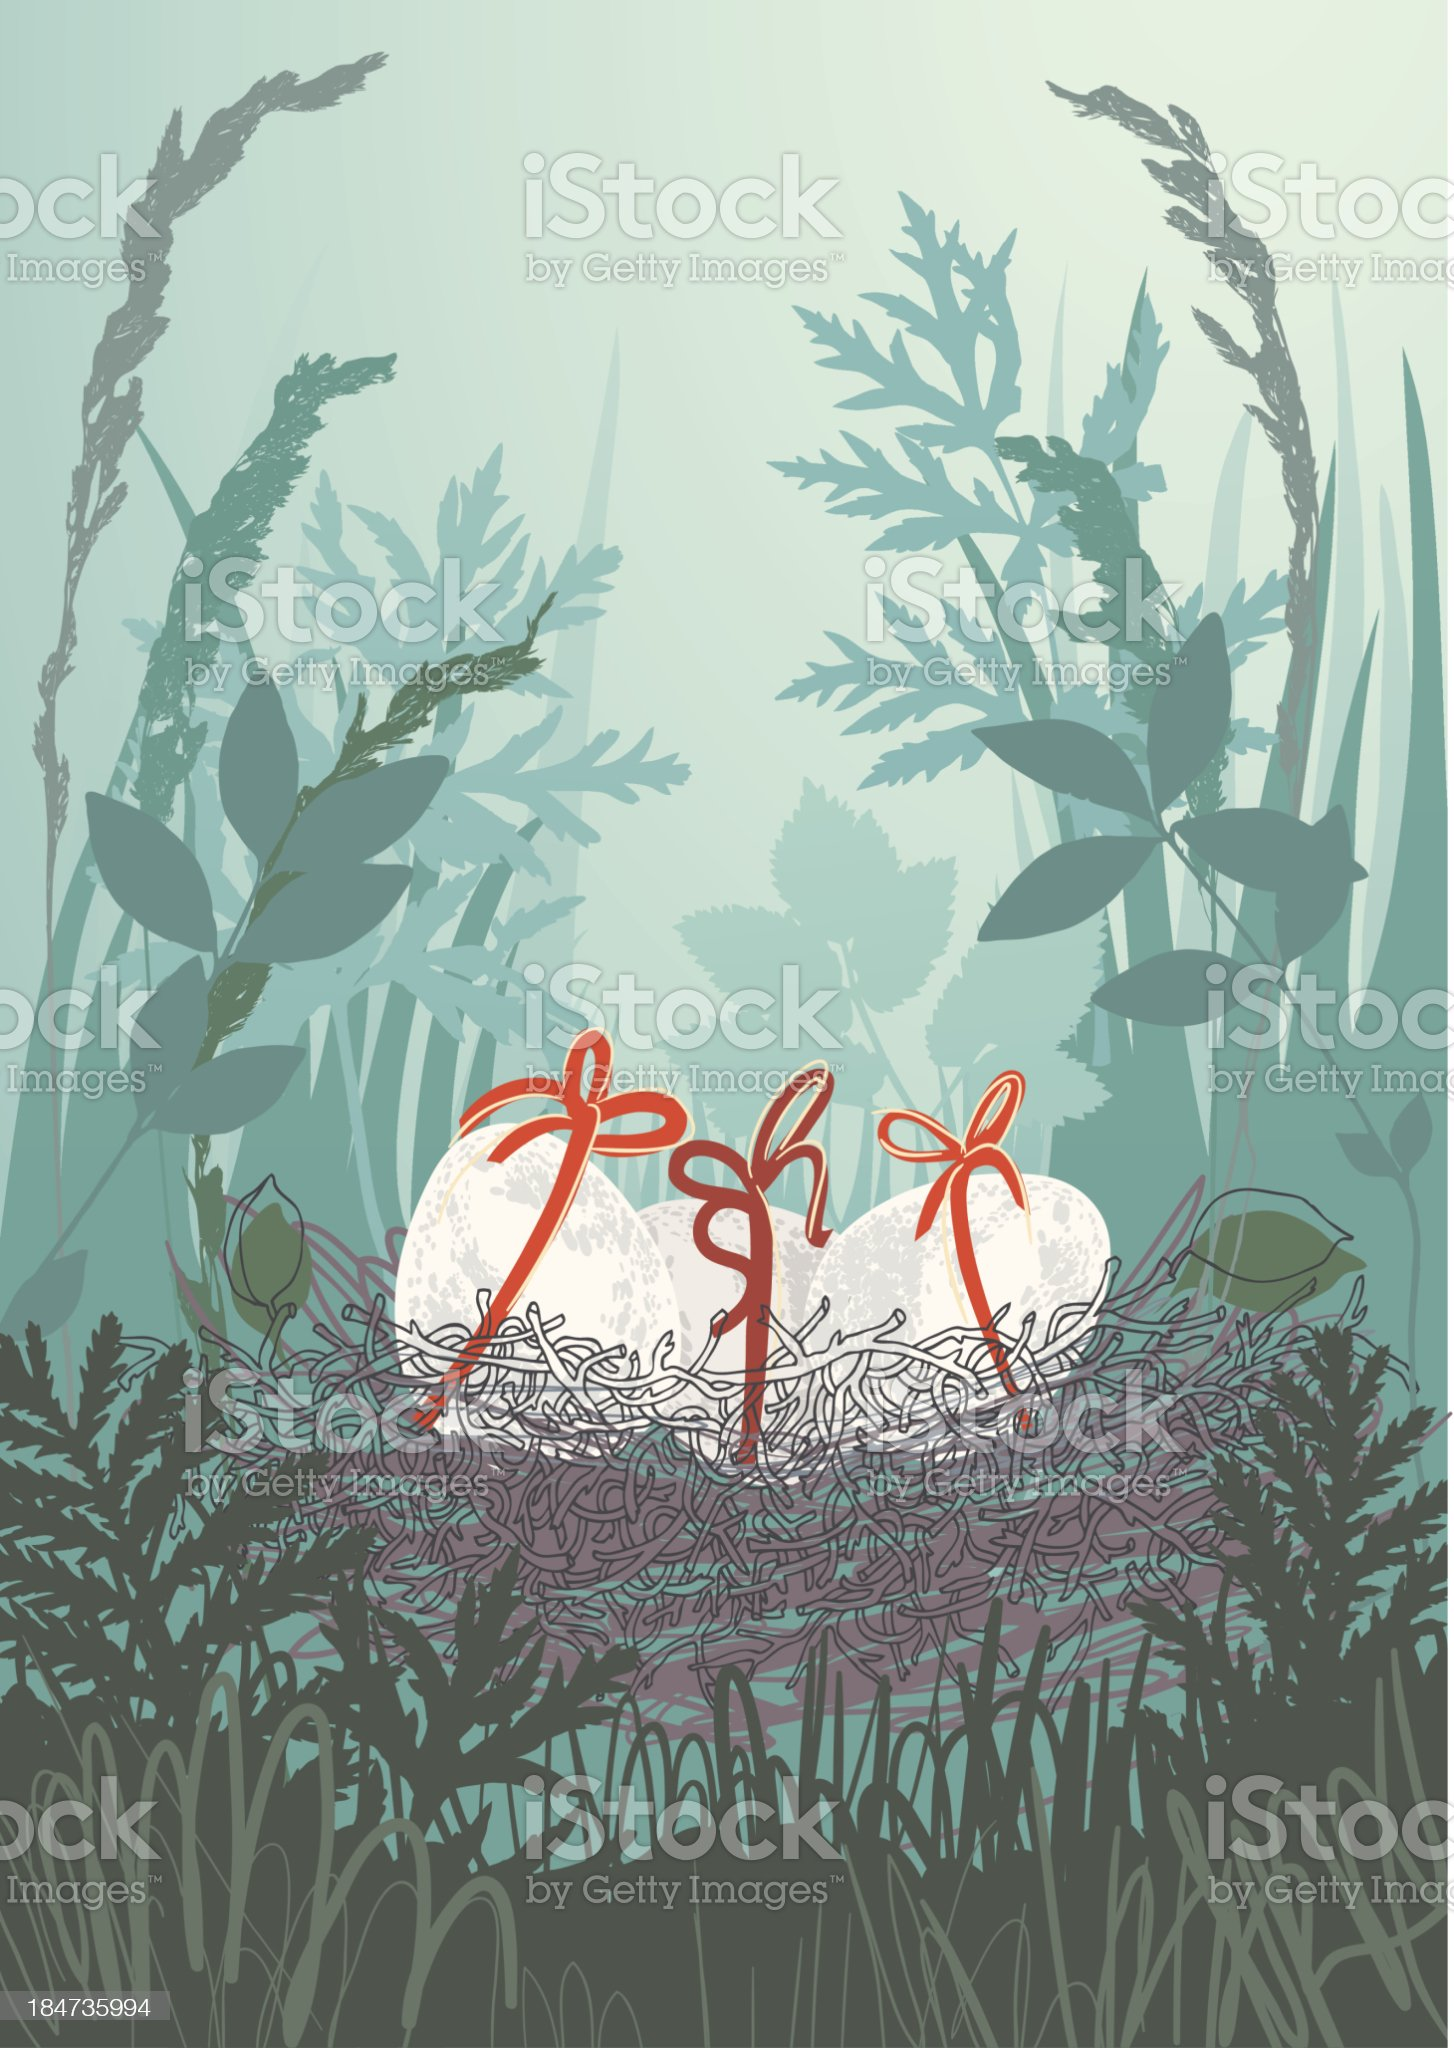 Nest in Grass royalty-free stock vector art